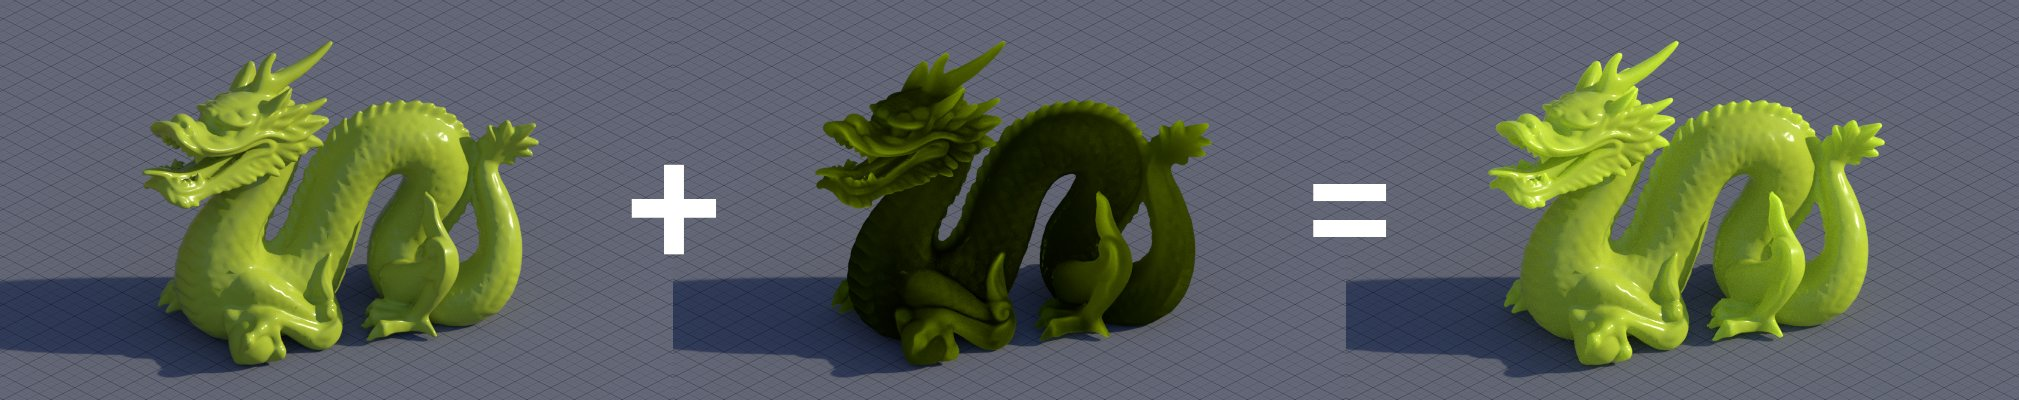 Faking Subsurface Scattering using translucency and Ray Length